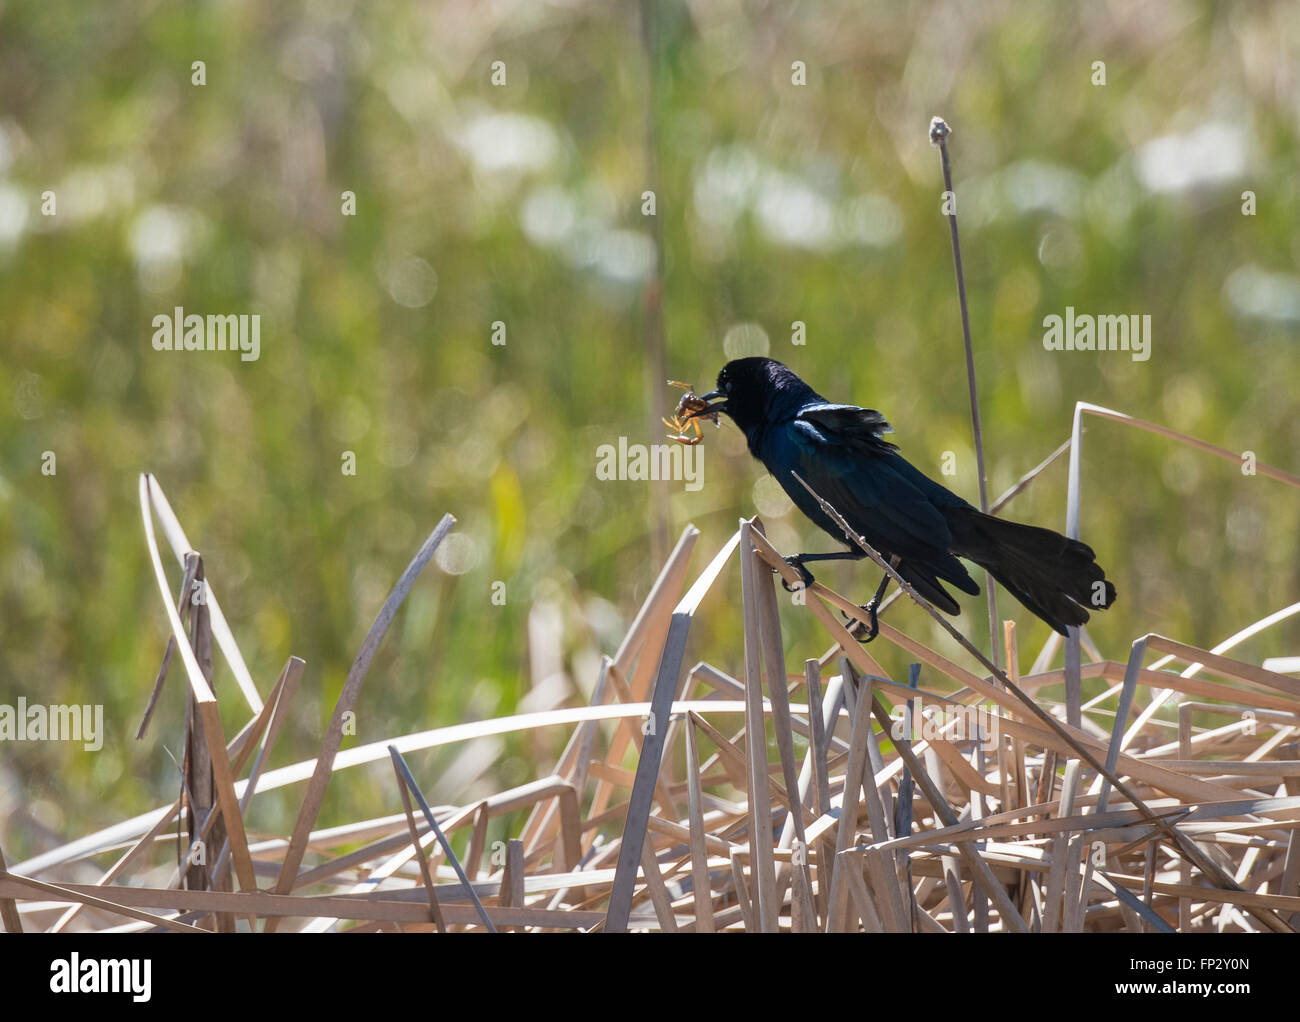 Common Grackle in flight with crayfish catch - Stock Image